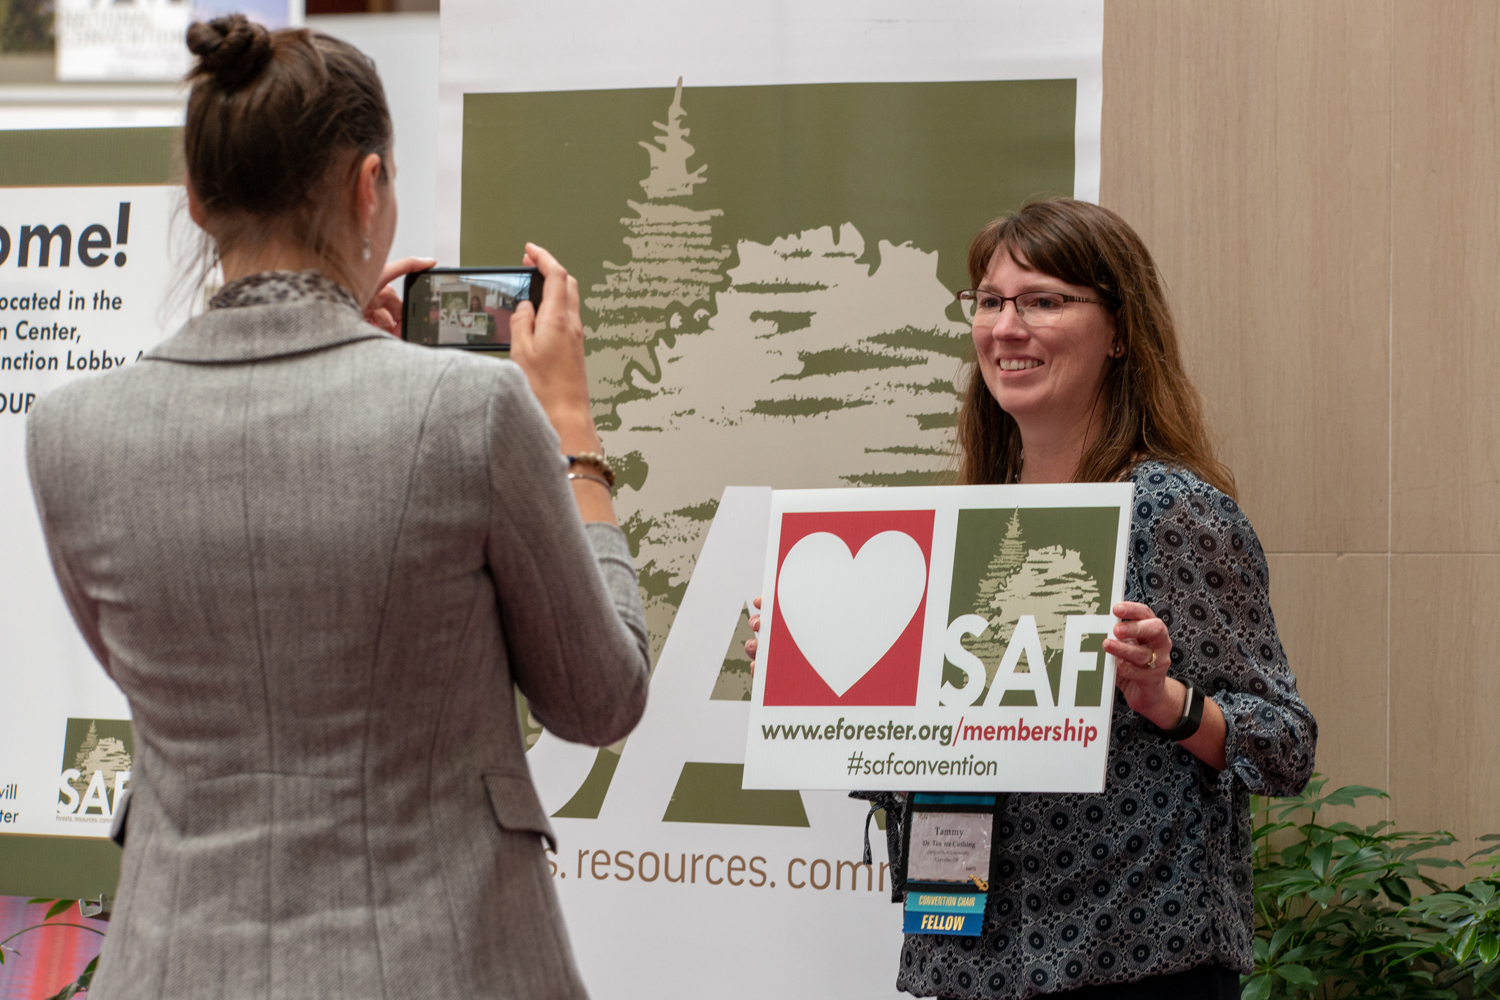 Wasim Muklashy Photography_-SAM_2329_Society of American Foresters National Convention_119.jpg